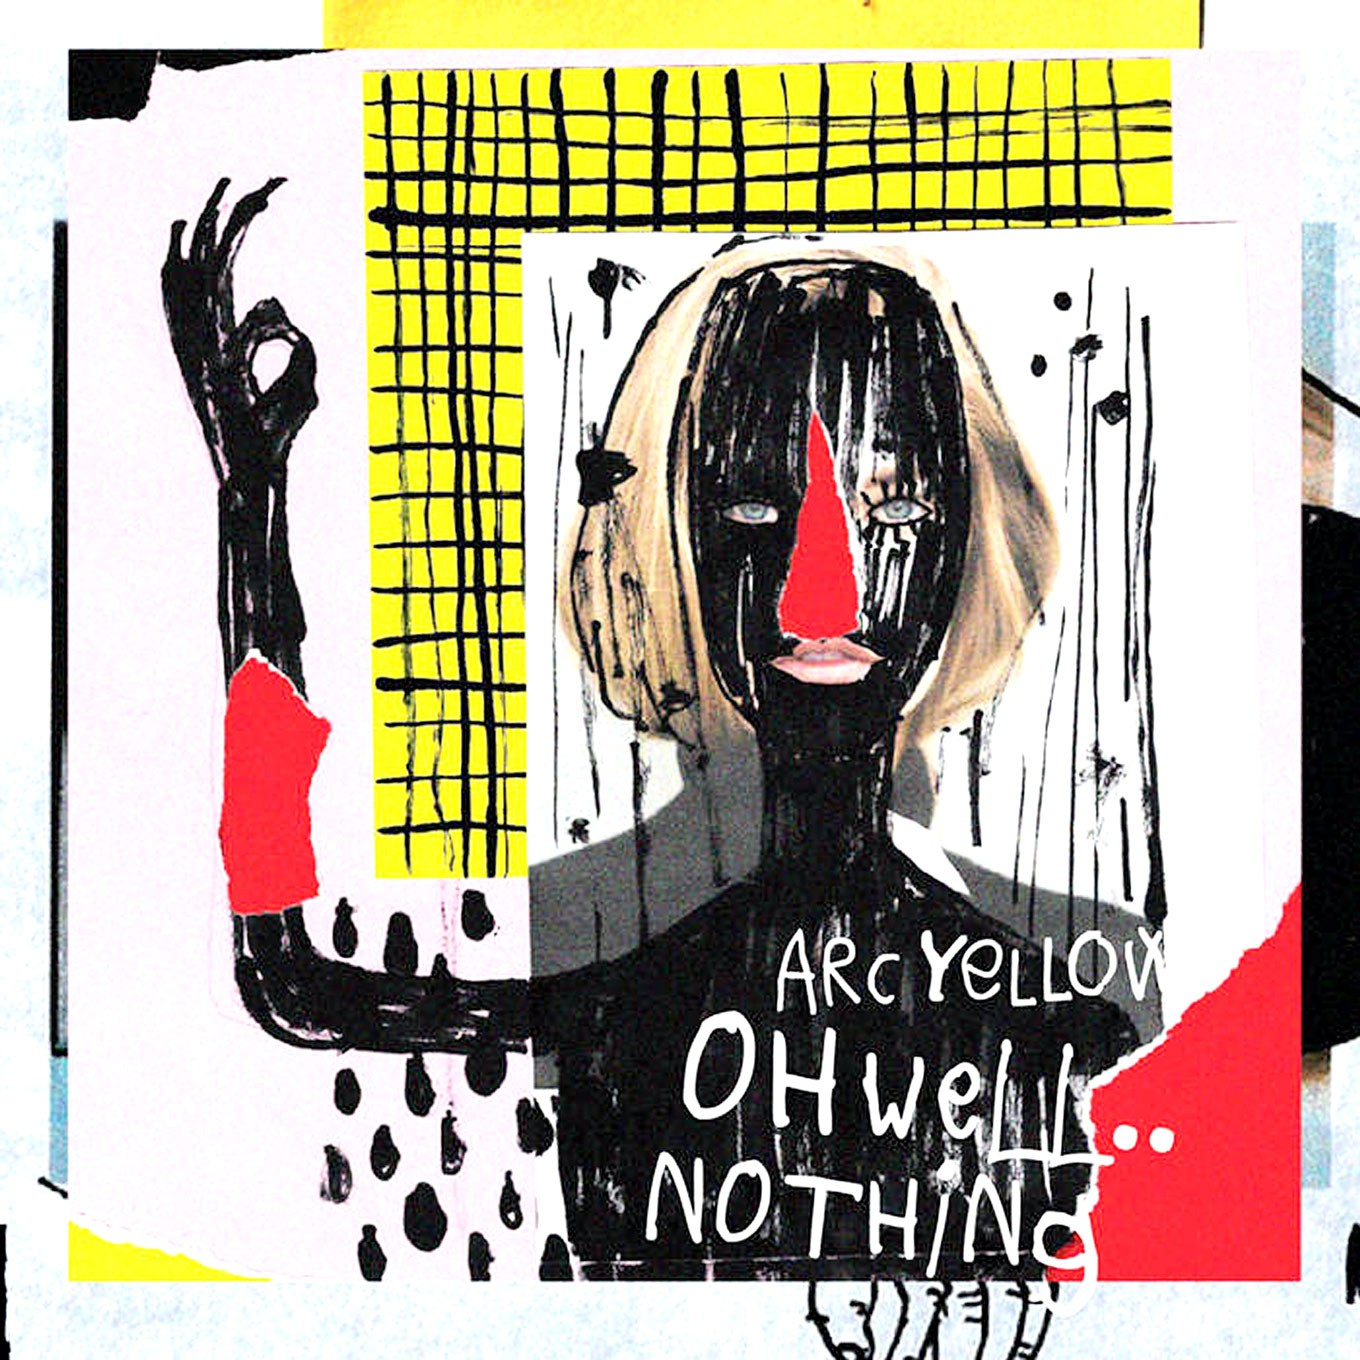 Album review: 'Oh Well...Nothing' by Arc Yellow